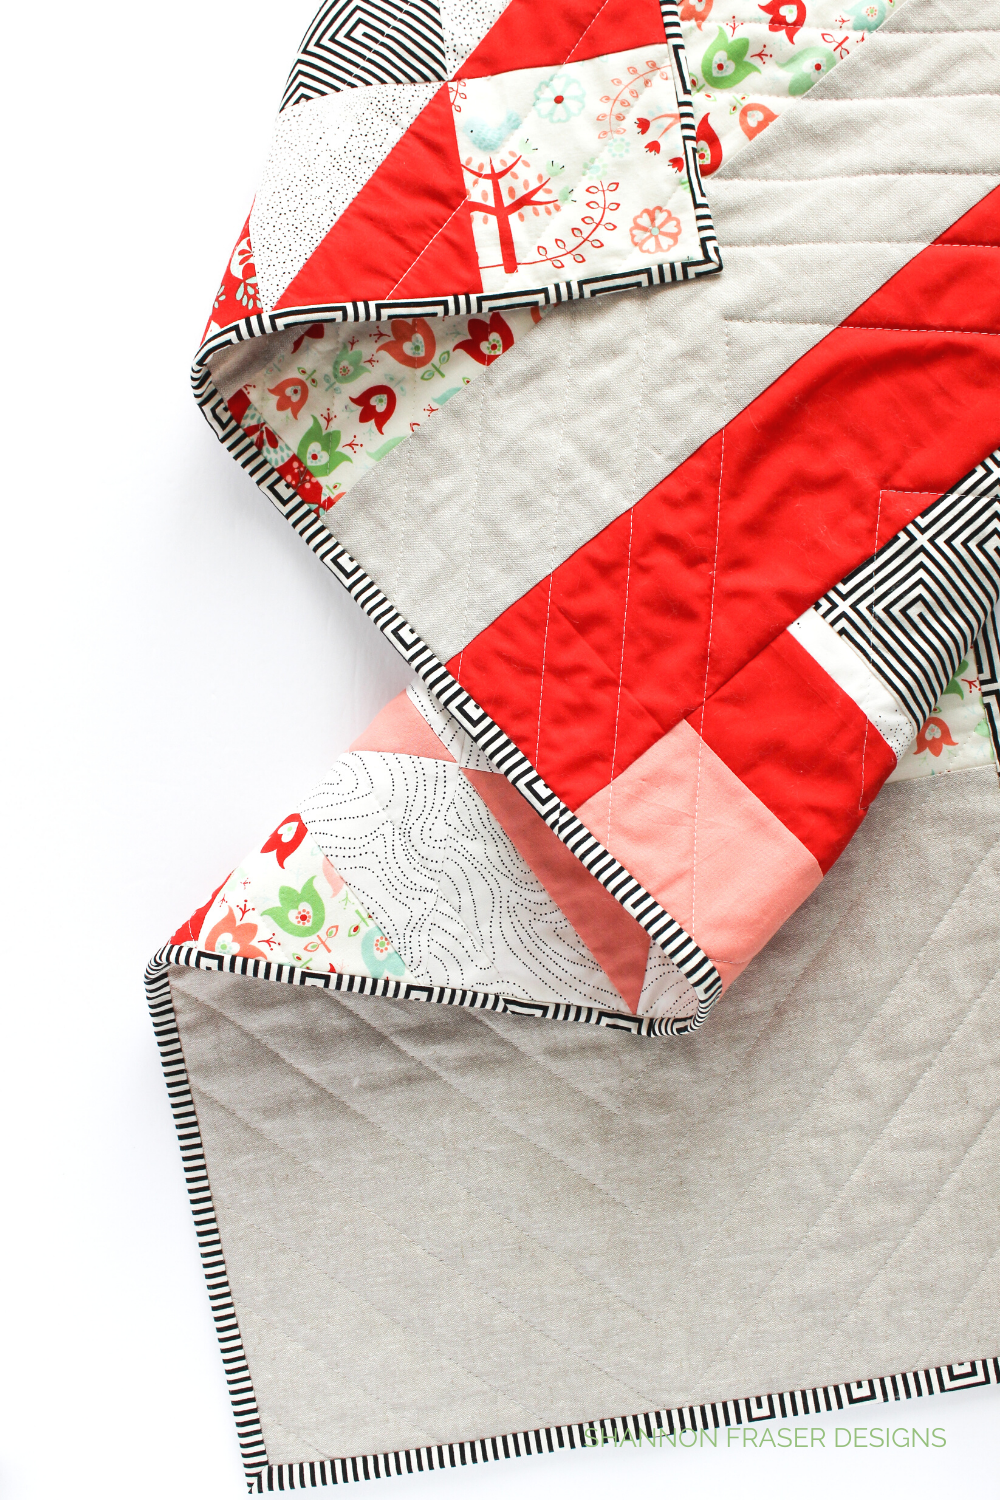 Improv quilted back on the Holiday Modern Aztec quilted table runner | 7 reasons why quilted table runners should be on your to gift list | Shannon Fraser Designs #tablerunner